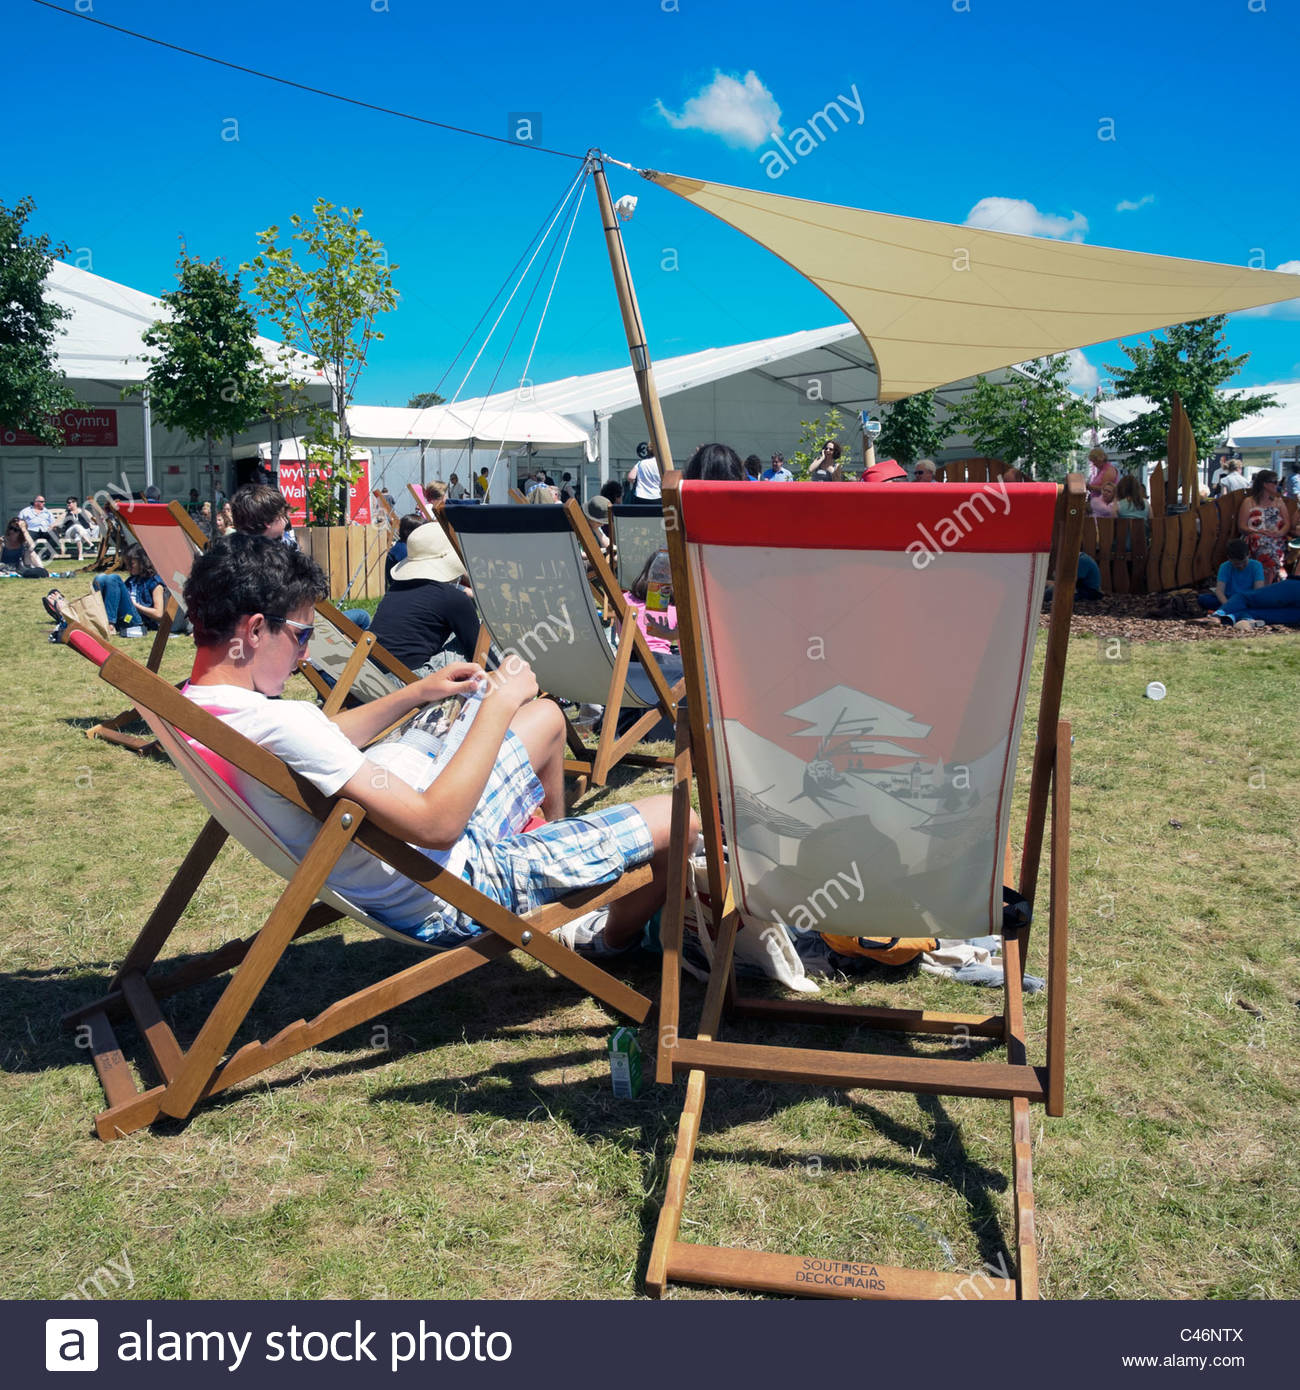 Hay on Wye, Wales, UK. Hay festival man reading a book sitting in a deckchair. - Stock Image